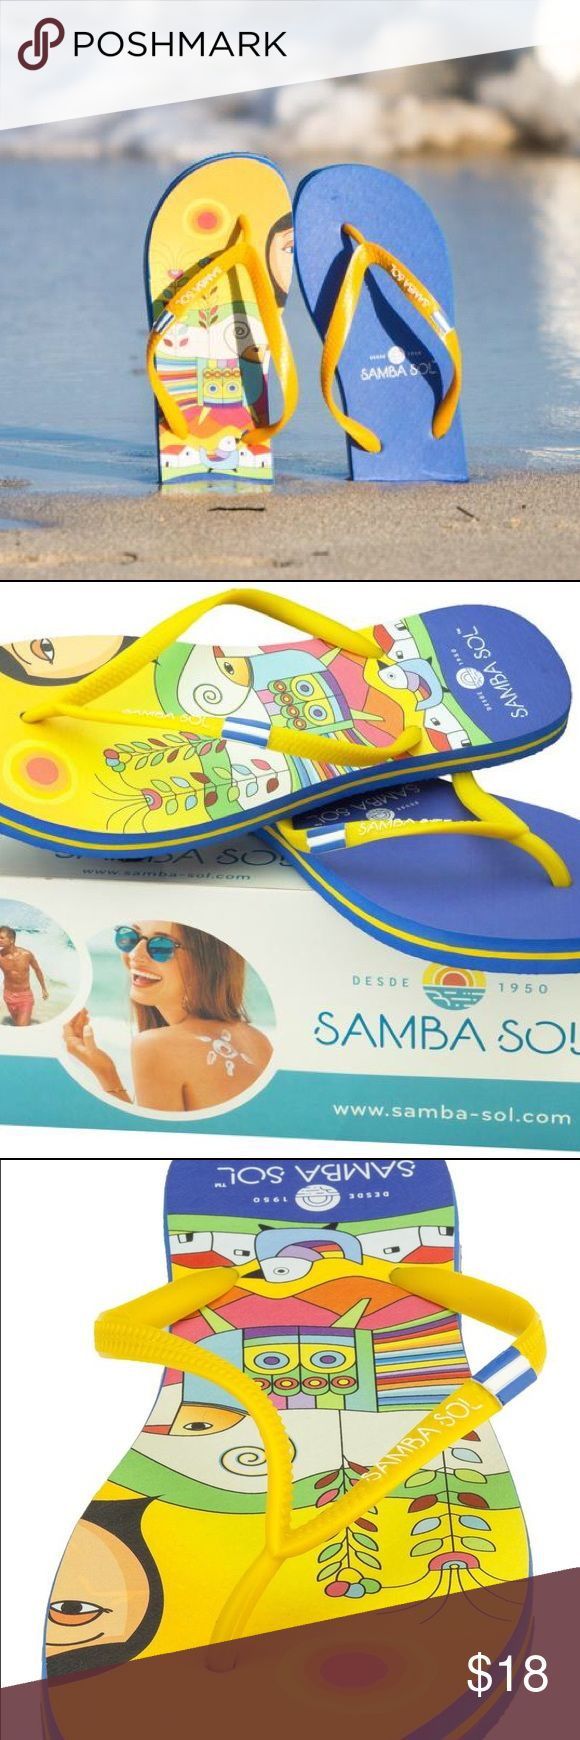 Samba Sol El Salvador Flag Flip Flops 🇸🇻 Samba Sol Women's El Salvador Flag Flip Flops🇸🇻 ENVIRONMENTALLY FRIENDLY! Made with recyclable Brazilian rubber, your purchase actually helps protect the Amazonian rainforest!🌎 They come in sizes 5/6, 7/8, 9/10, and 11/12.                                                          (Not Havaianas. Brand tagged for exposure) Havaianas Shoes Sandals